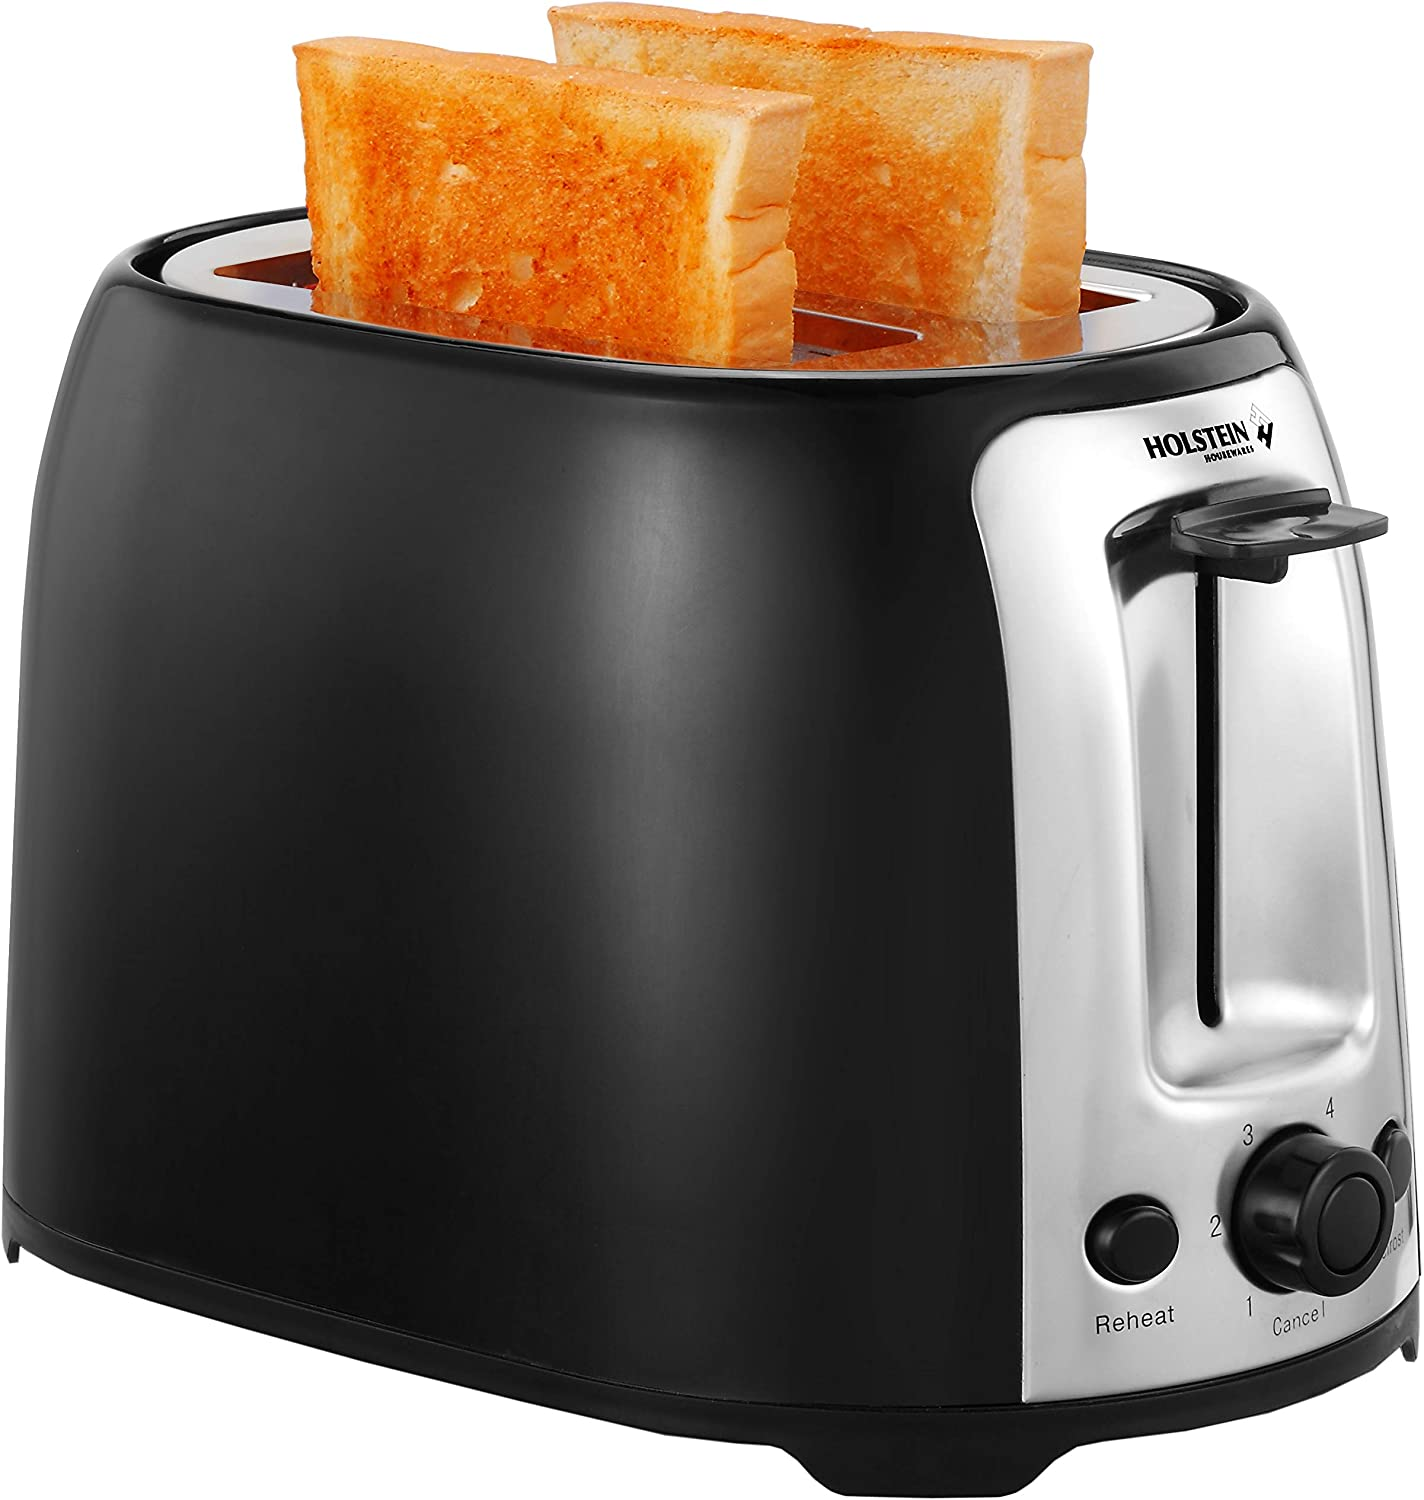 Holstein Housewares HH-09175001B 2-Slice Toaster with 7 Browning Levels, Black